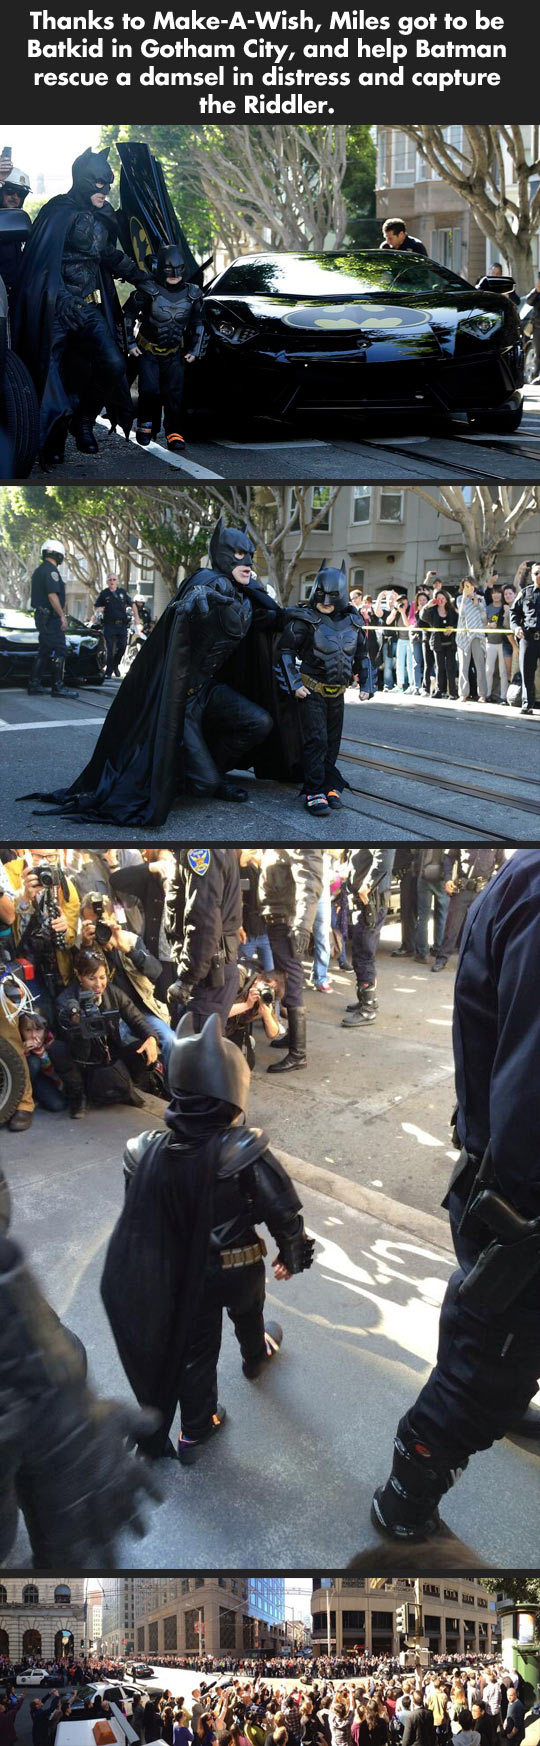 Batkid for one day...